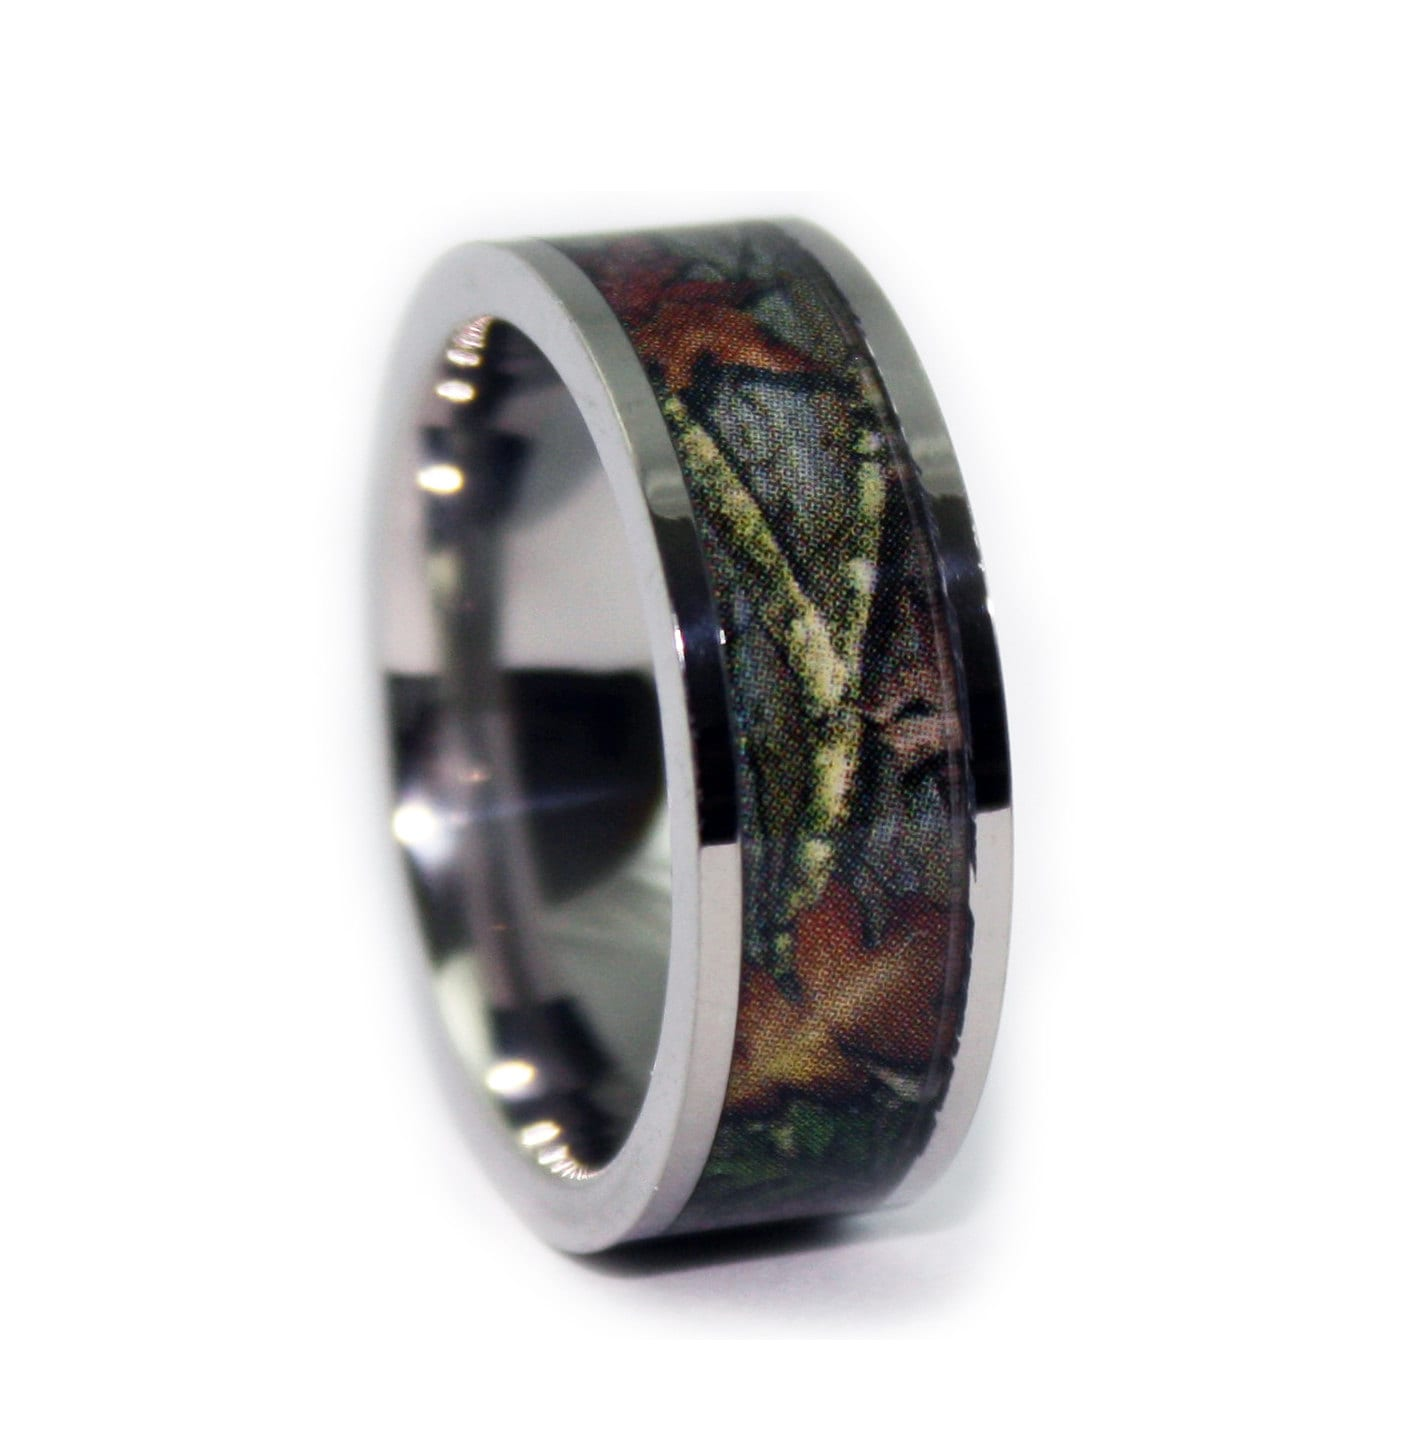 realtree rings matching tree premium camo bark sets finish